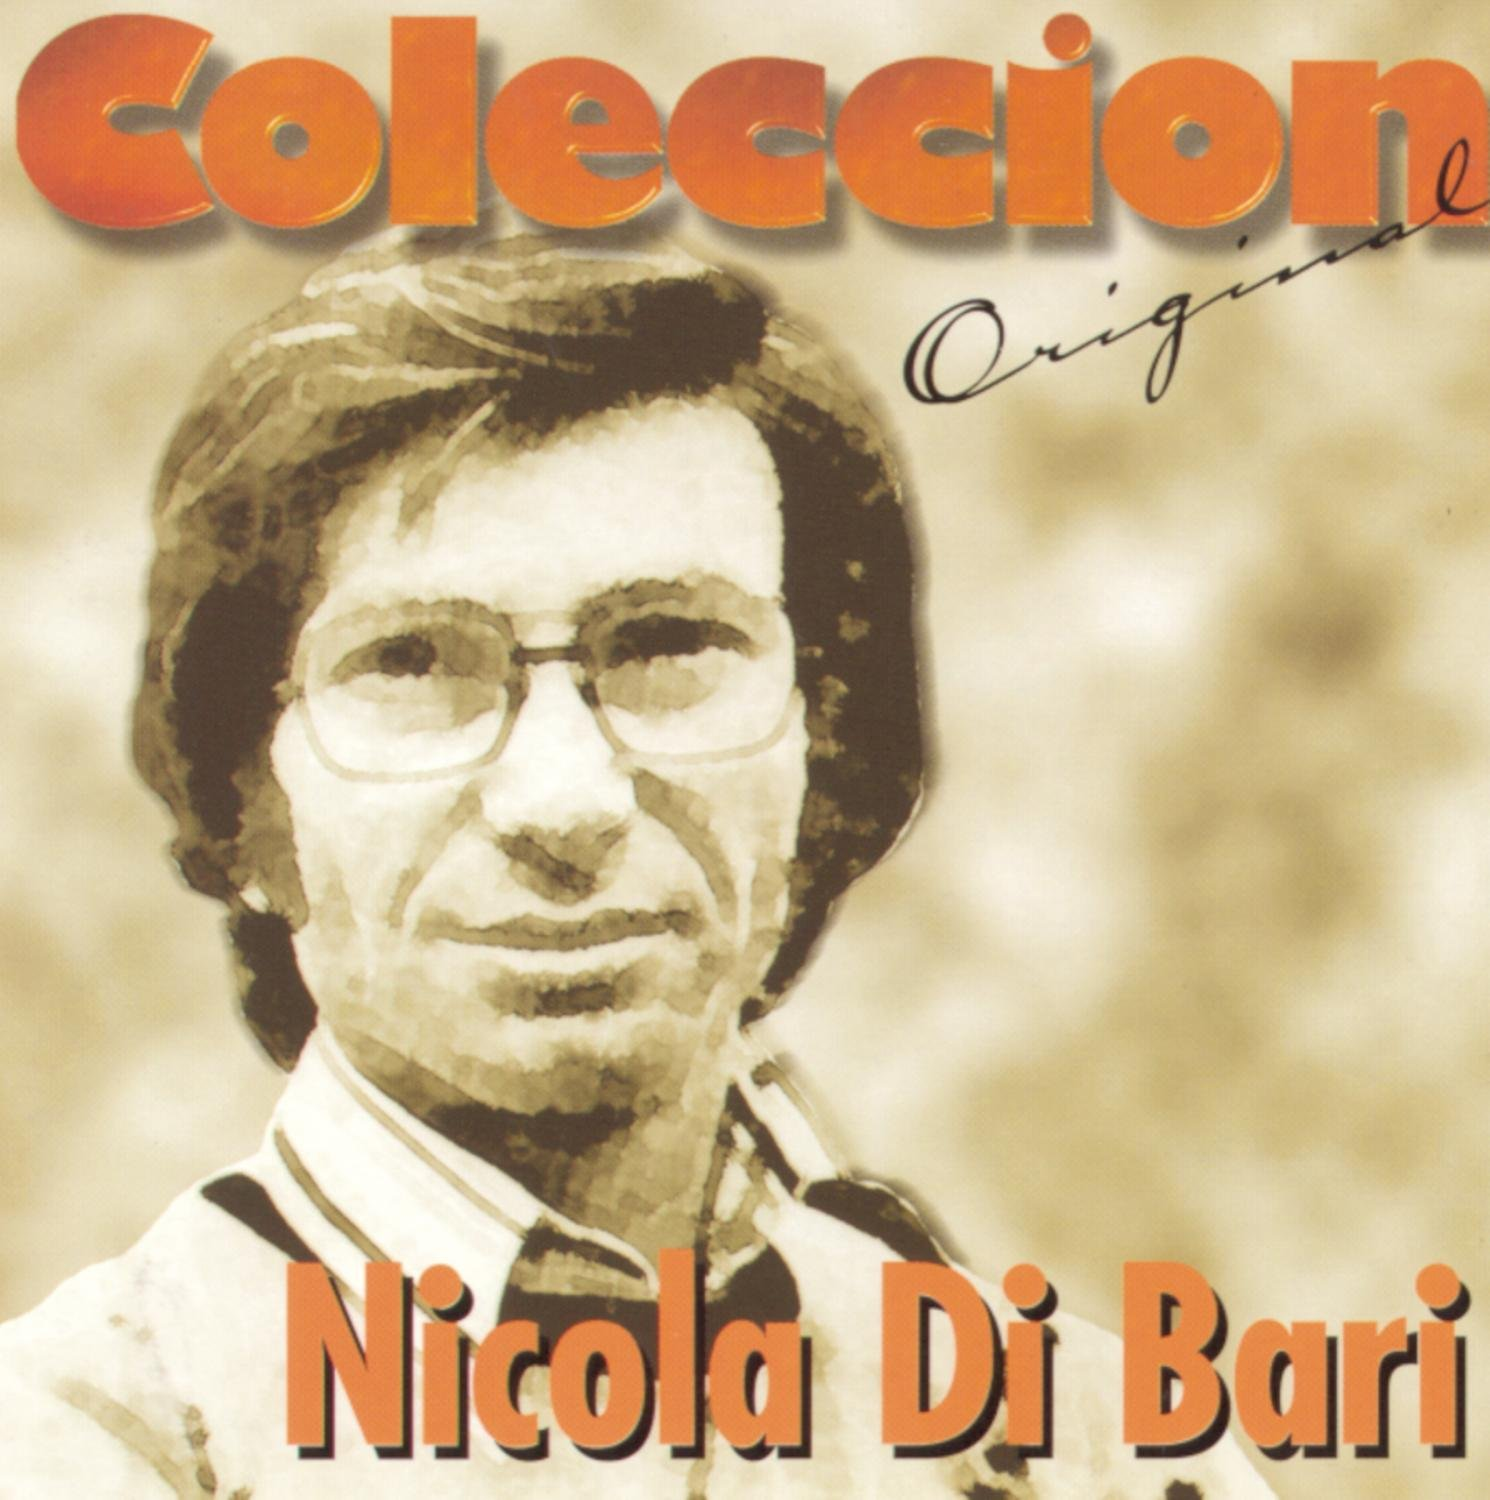 Coleccion Original: Nicola di Bari: Amazon.es: Música